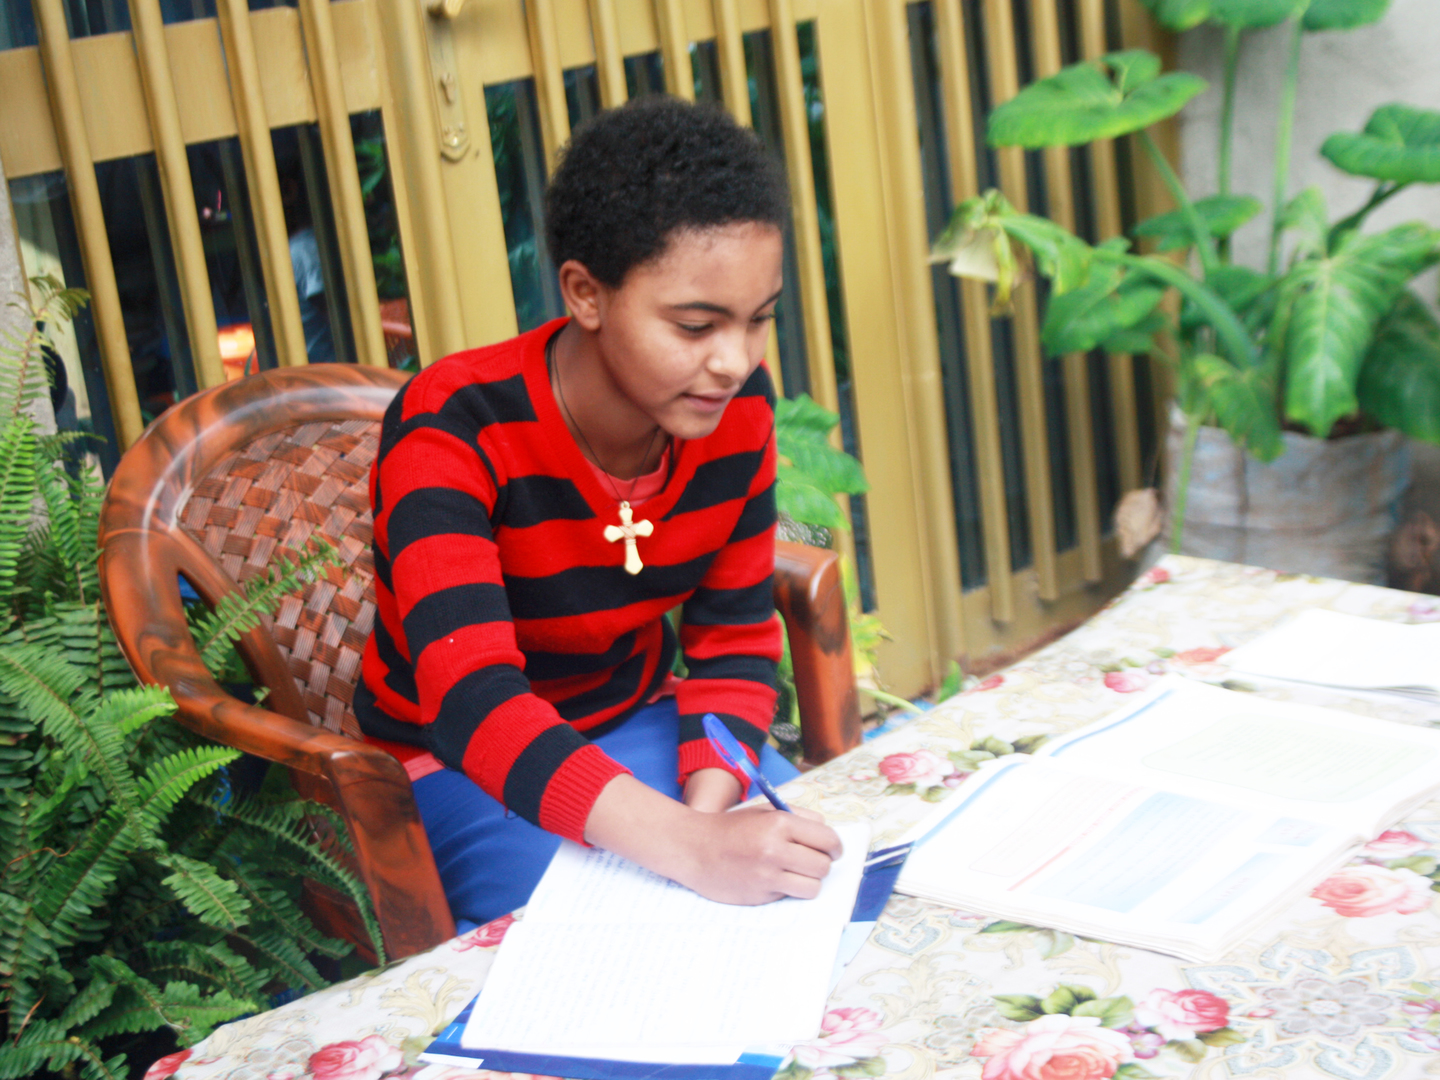 Female student leans over her homework sitting at a table surrounded by plants in Ethiopia